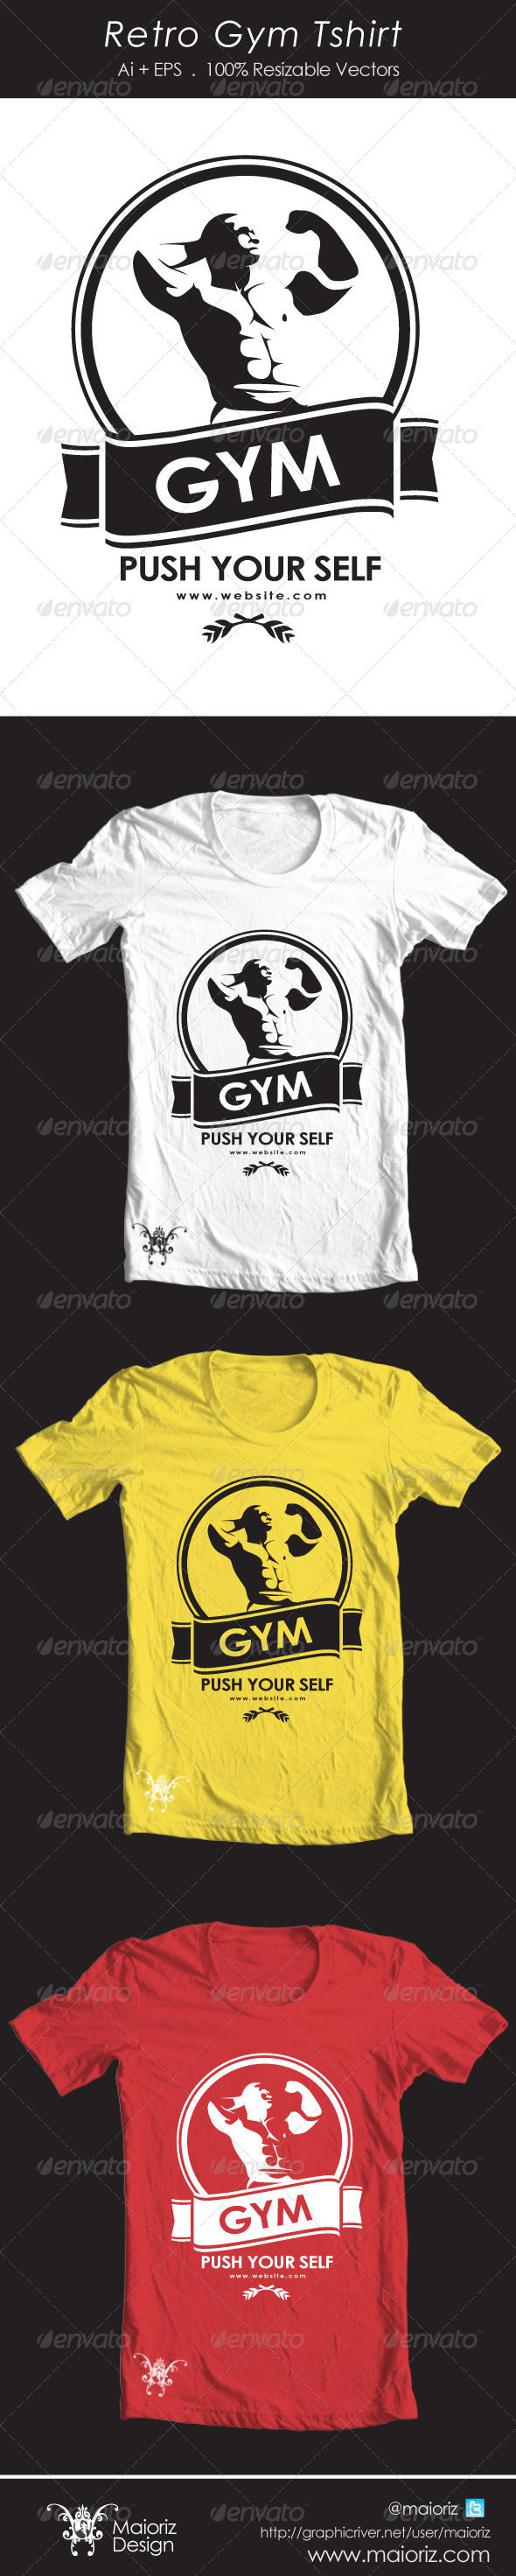 Retro Gym Tshirt - Sports & Teams T-Shirts